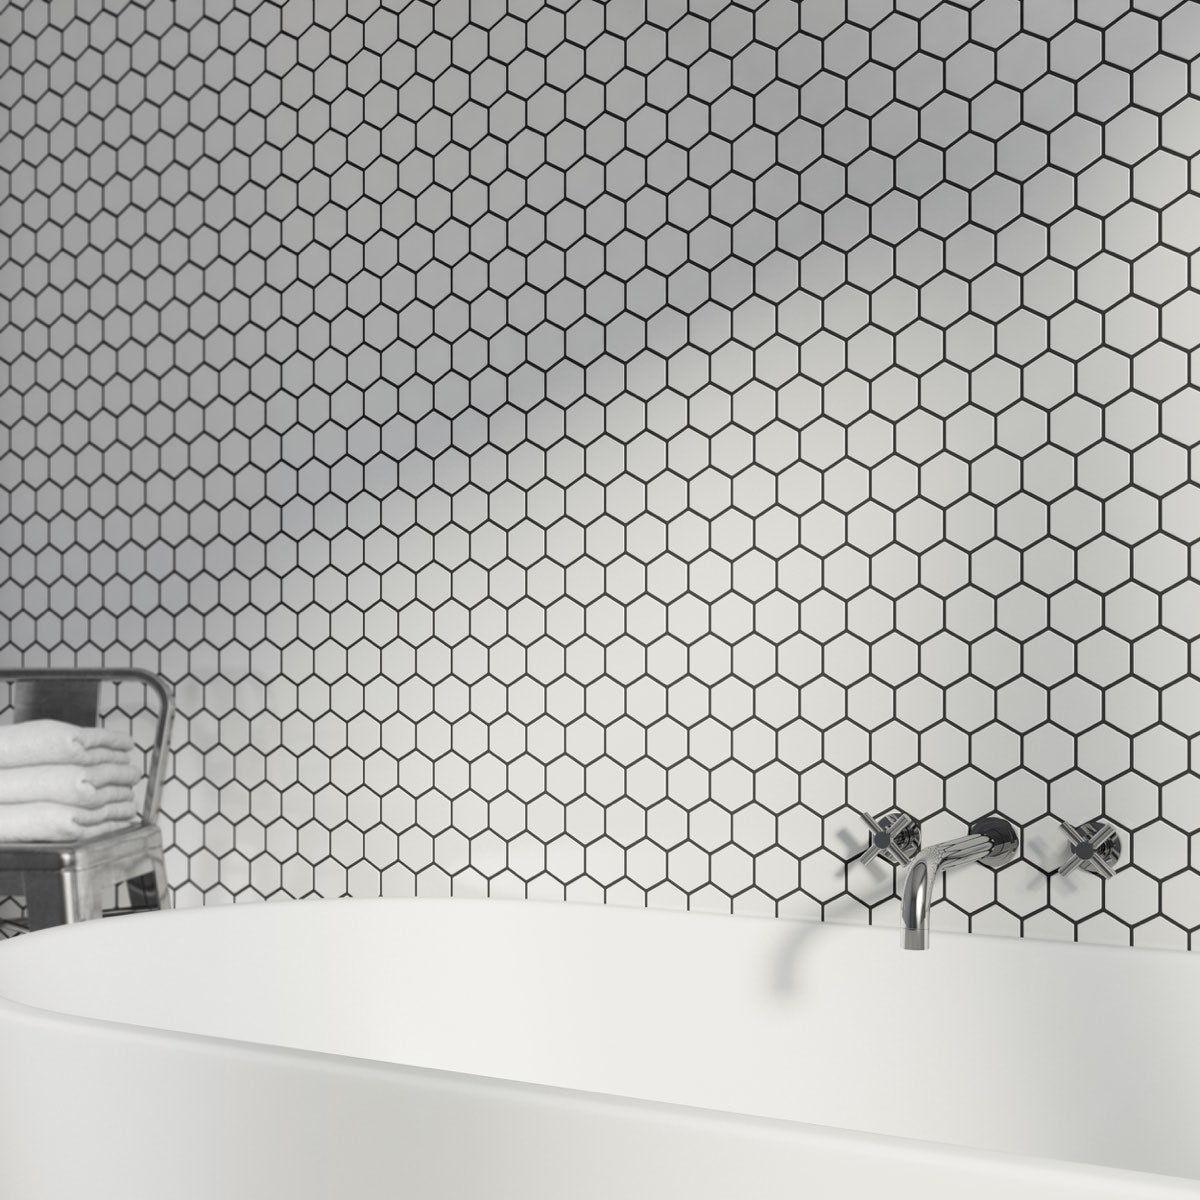 Bathroom Floor Tiles, Bathroom Floor Tiles UK | VictoriaPlum.com